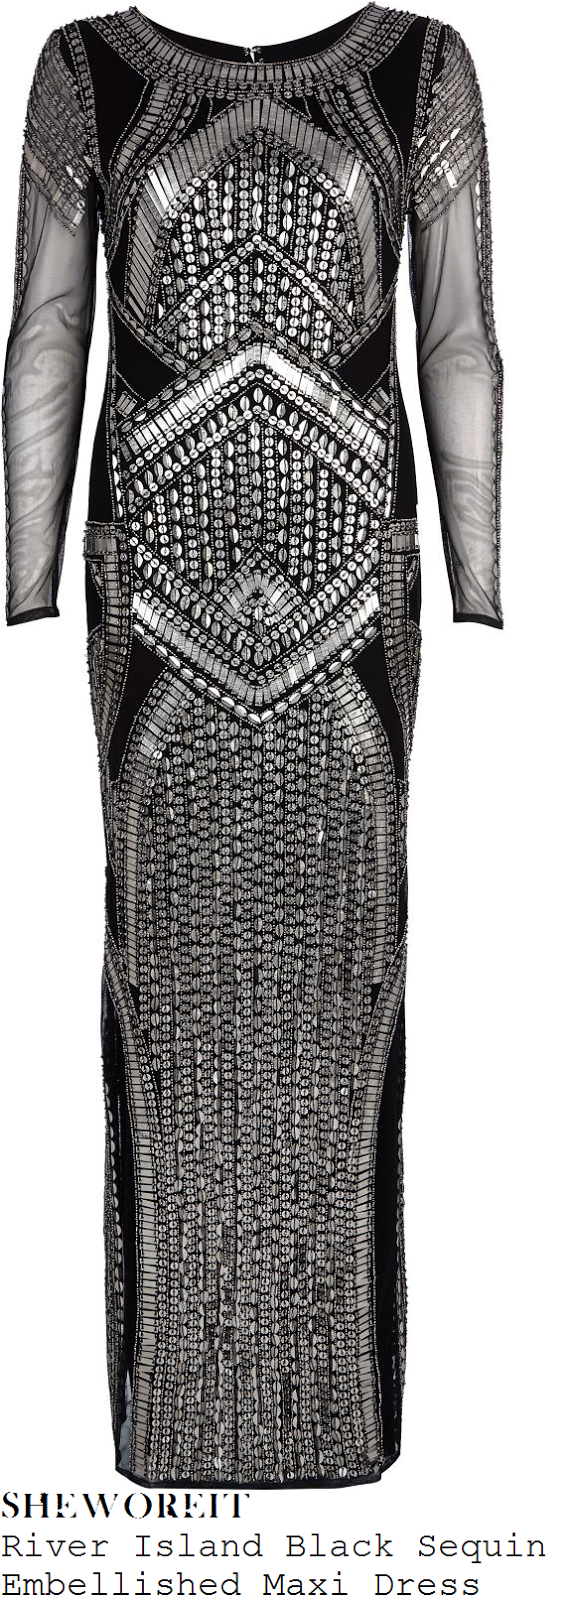 tamera-foster-black-silver-sequin-bead-embellished-mesh-maxi-dress-x-factor